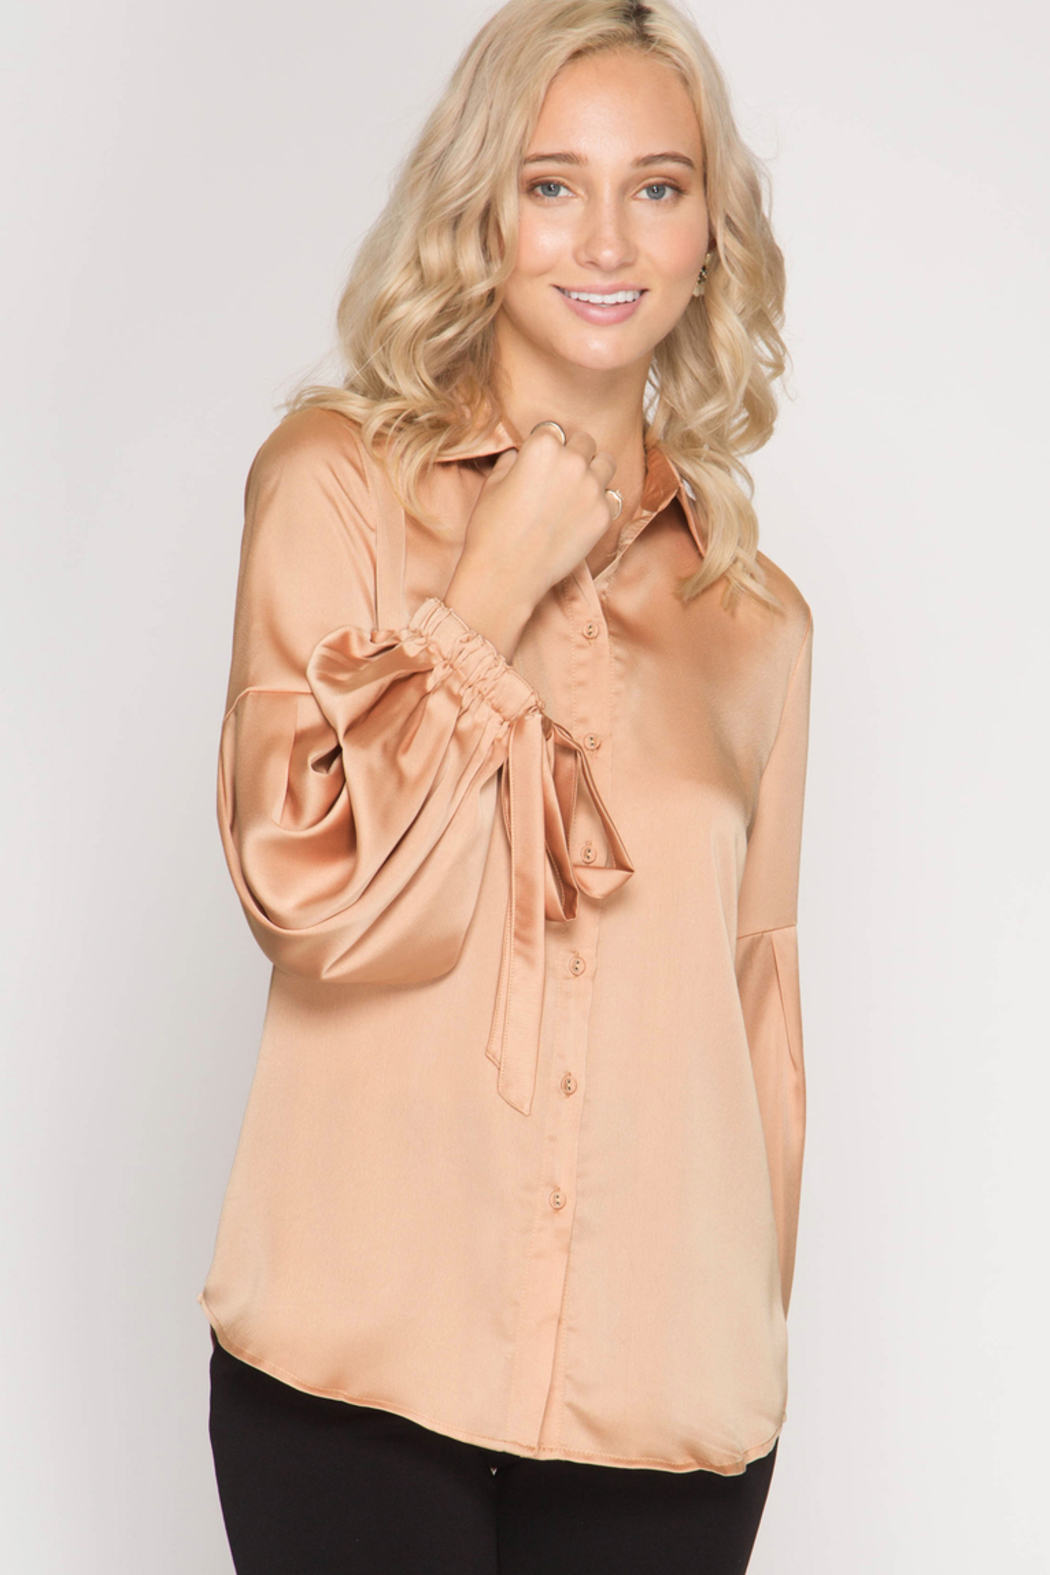 She + Sky Satin Tie Blouse - Main Image